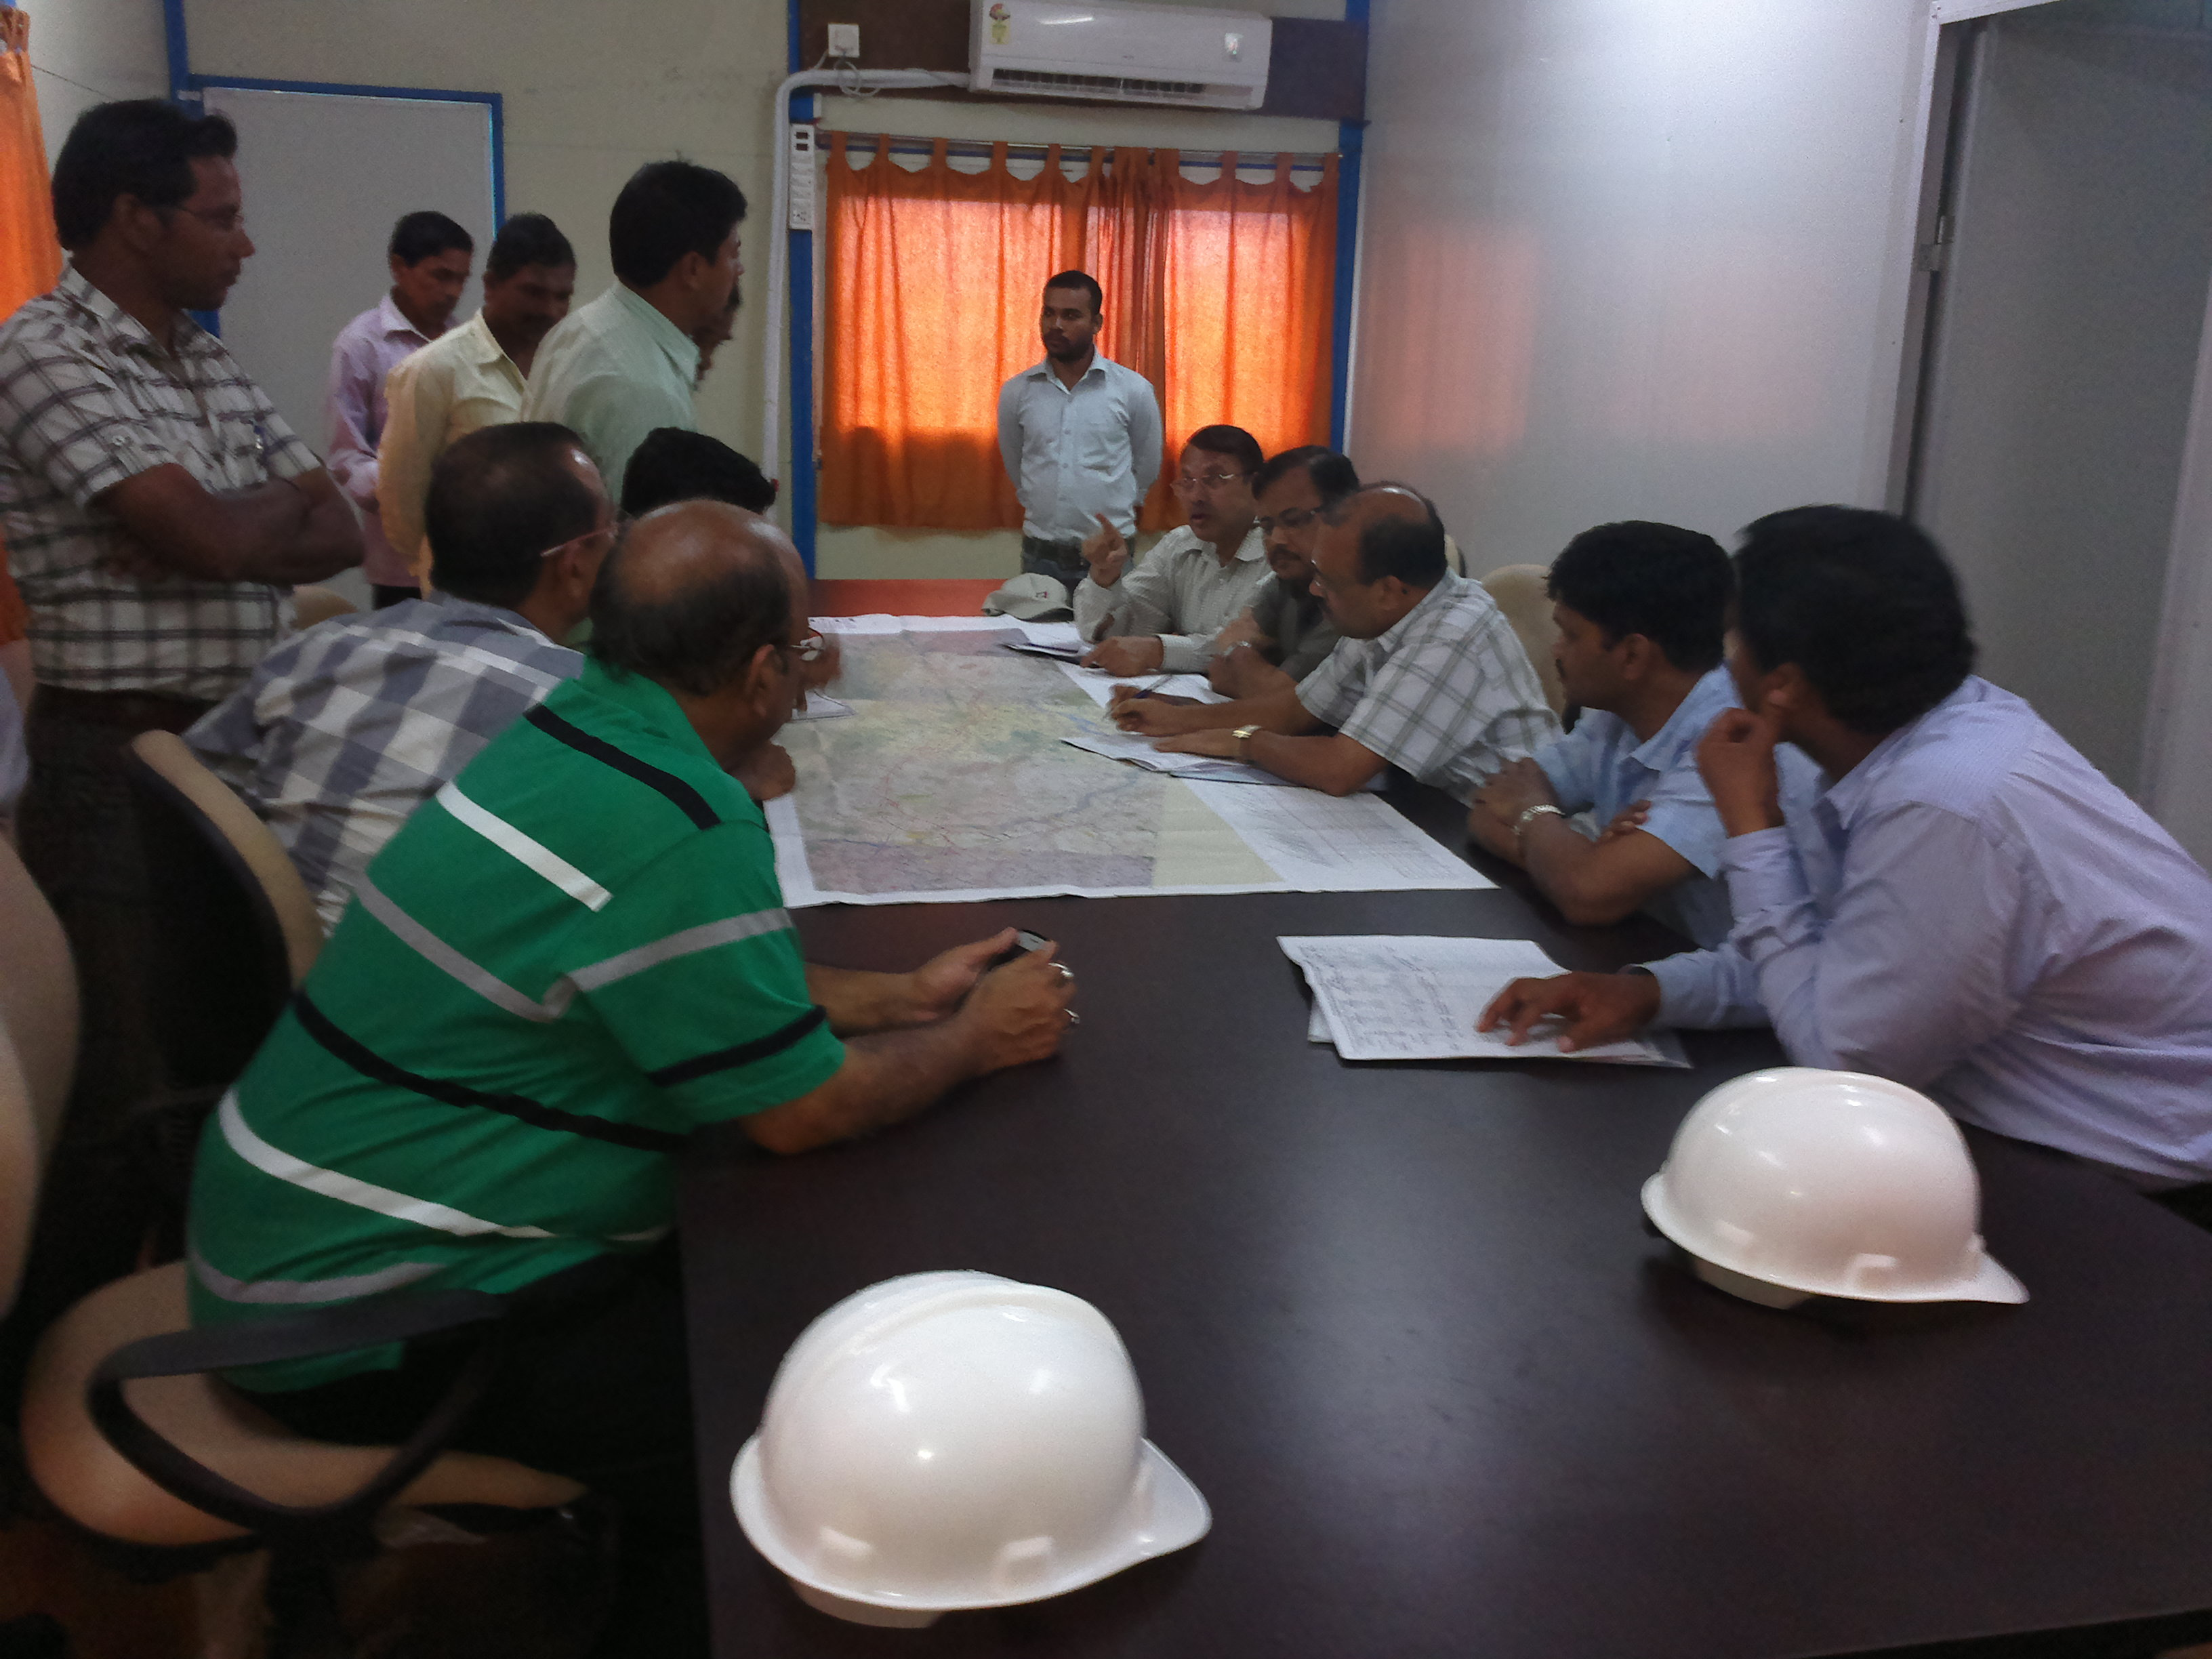 2. Visit of MD/ASRL with Commissioner Rail Co-ordination/Govt of Odisha and CPM-III, RVNL to Anghul-Sukinda Rail Line site. They held a meeting with Dr A. Padhi, IAS, RDC and Sri A. Agarwal, IAS on 18 Aug 2012